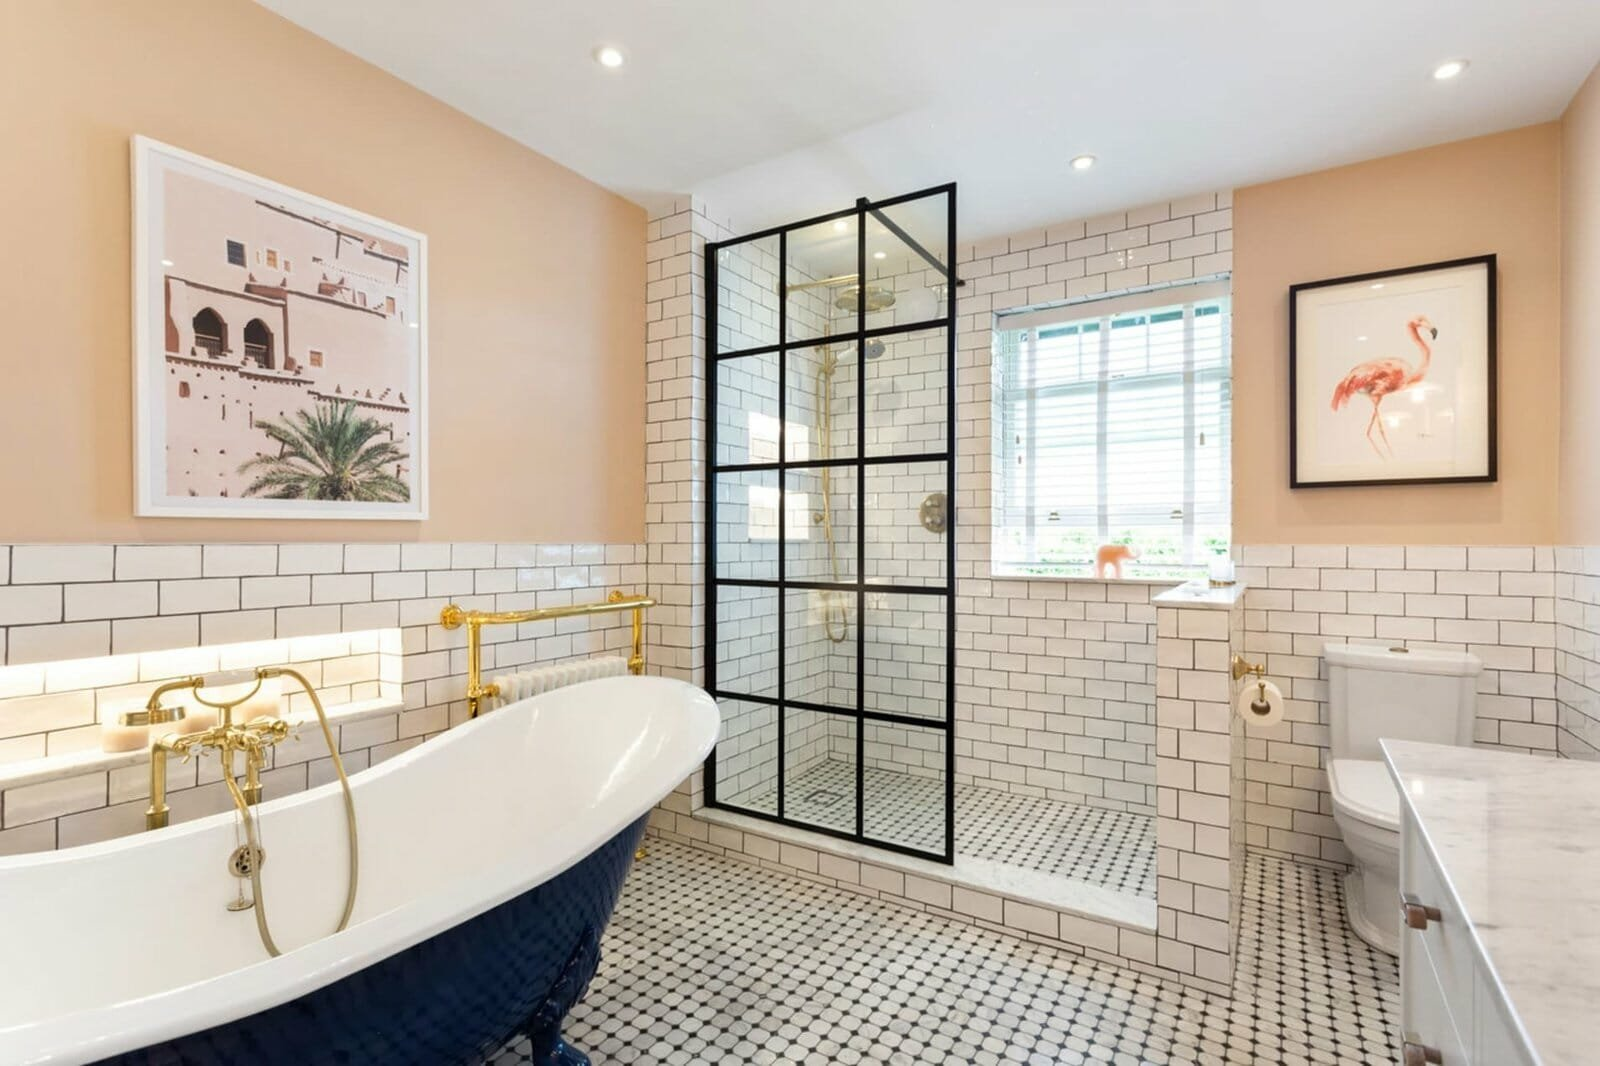 Bathroom tile ideas with a vintage vibe